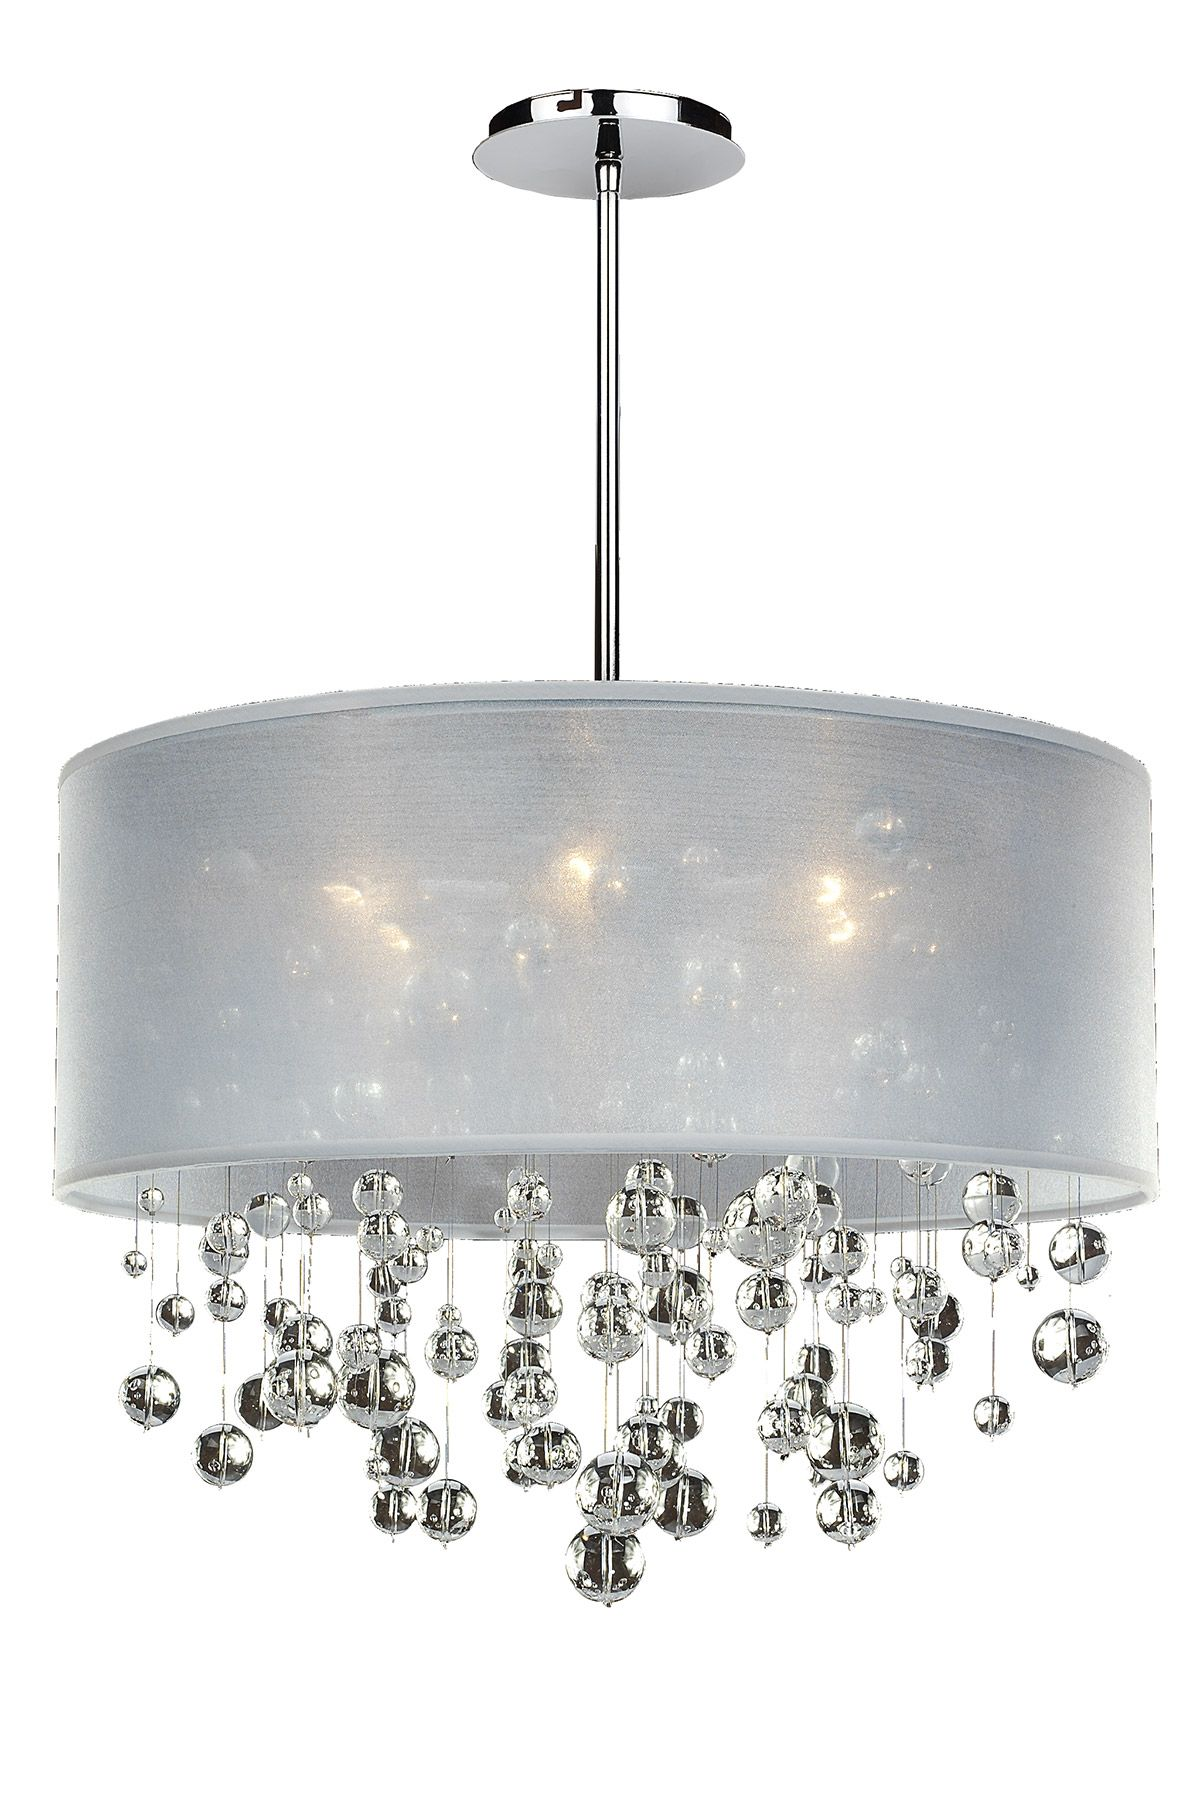 Silhouette 6 light chandelier features clear Signature Series